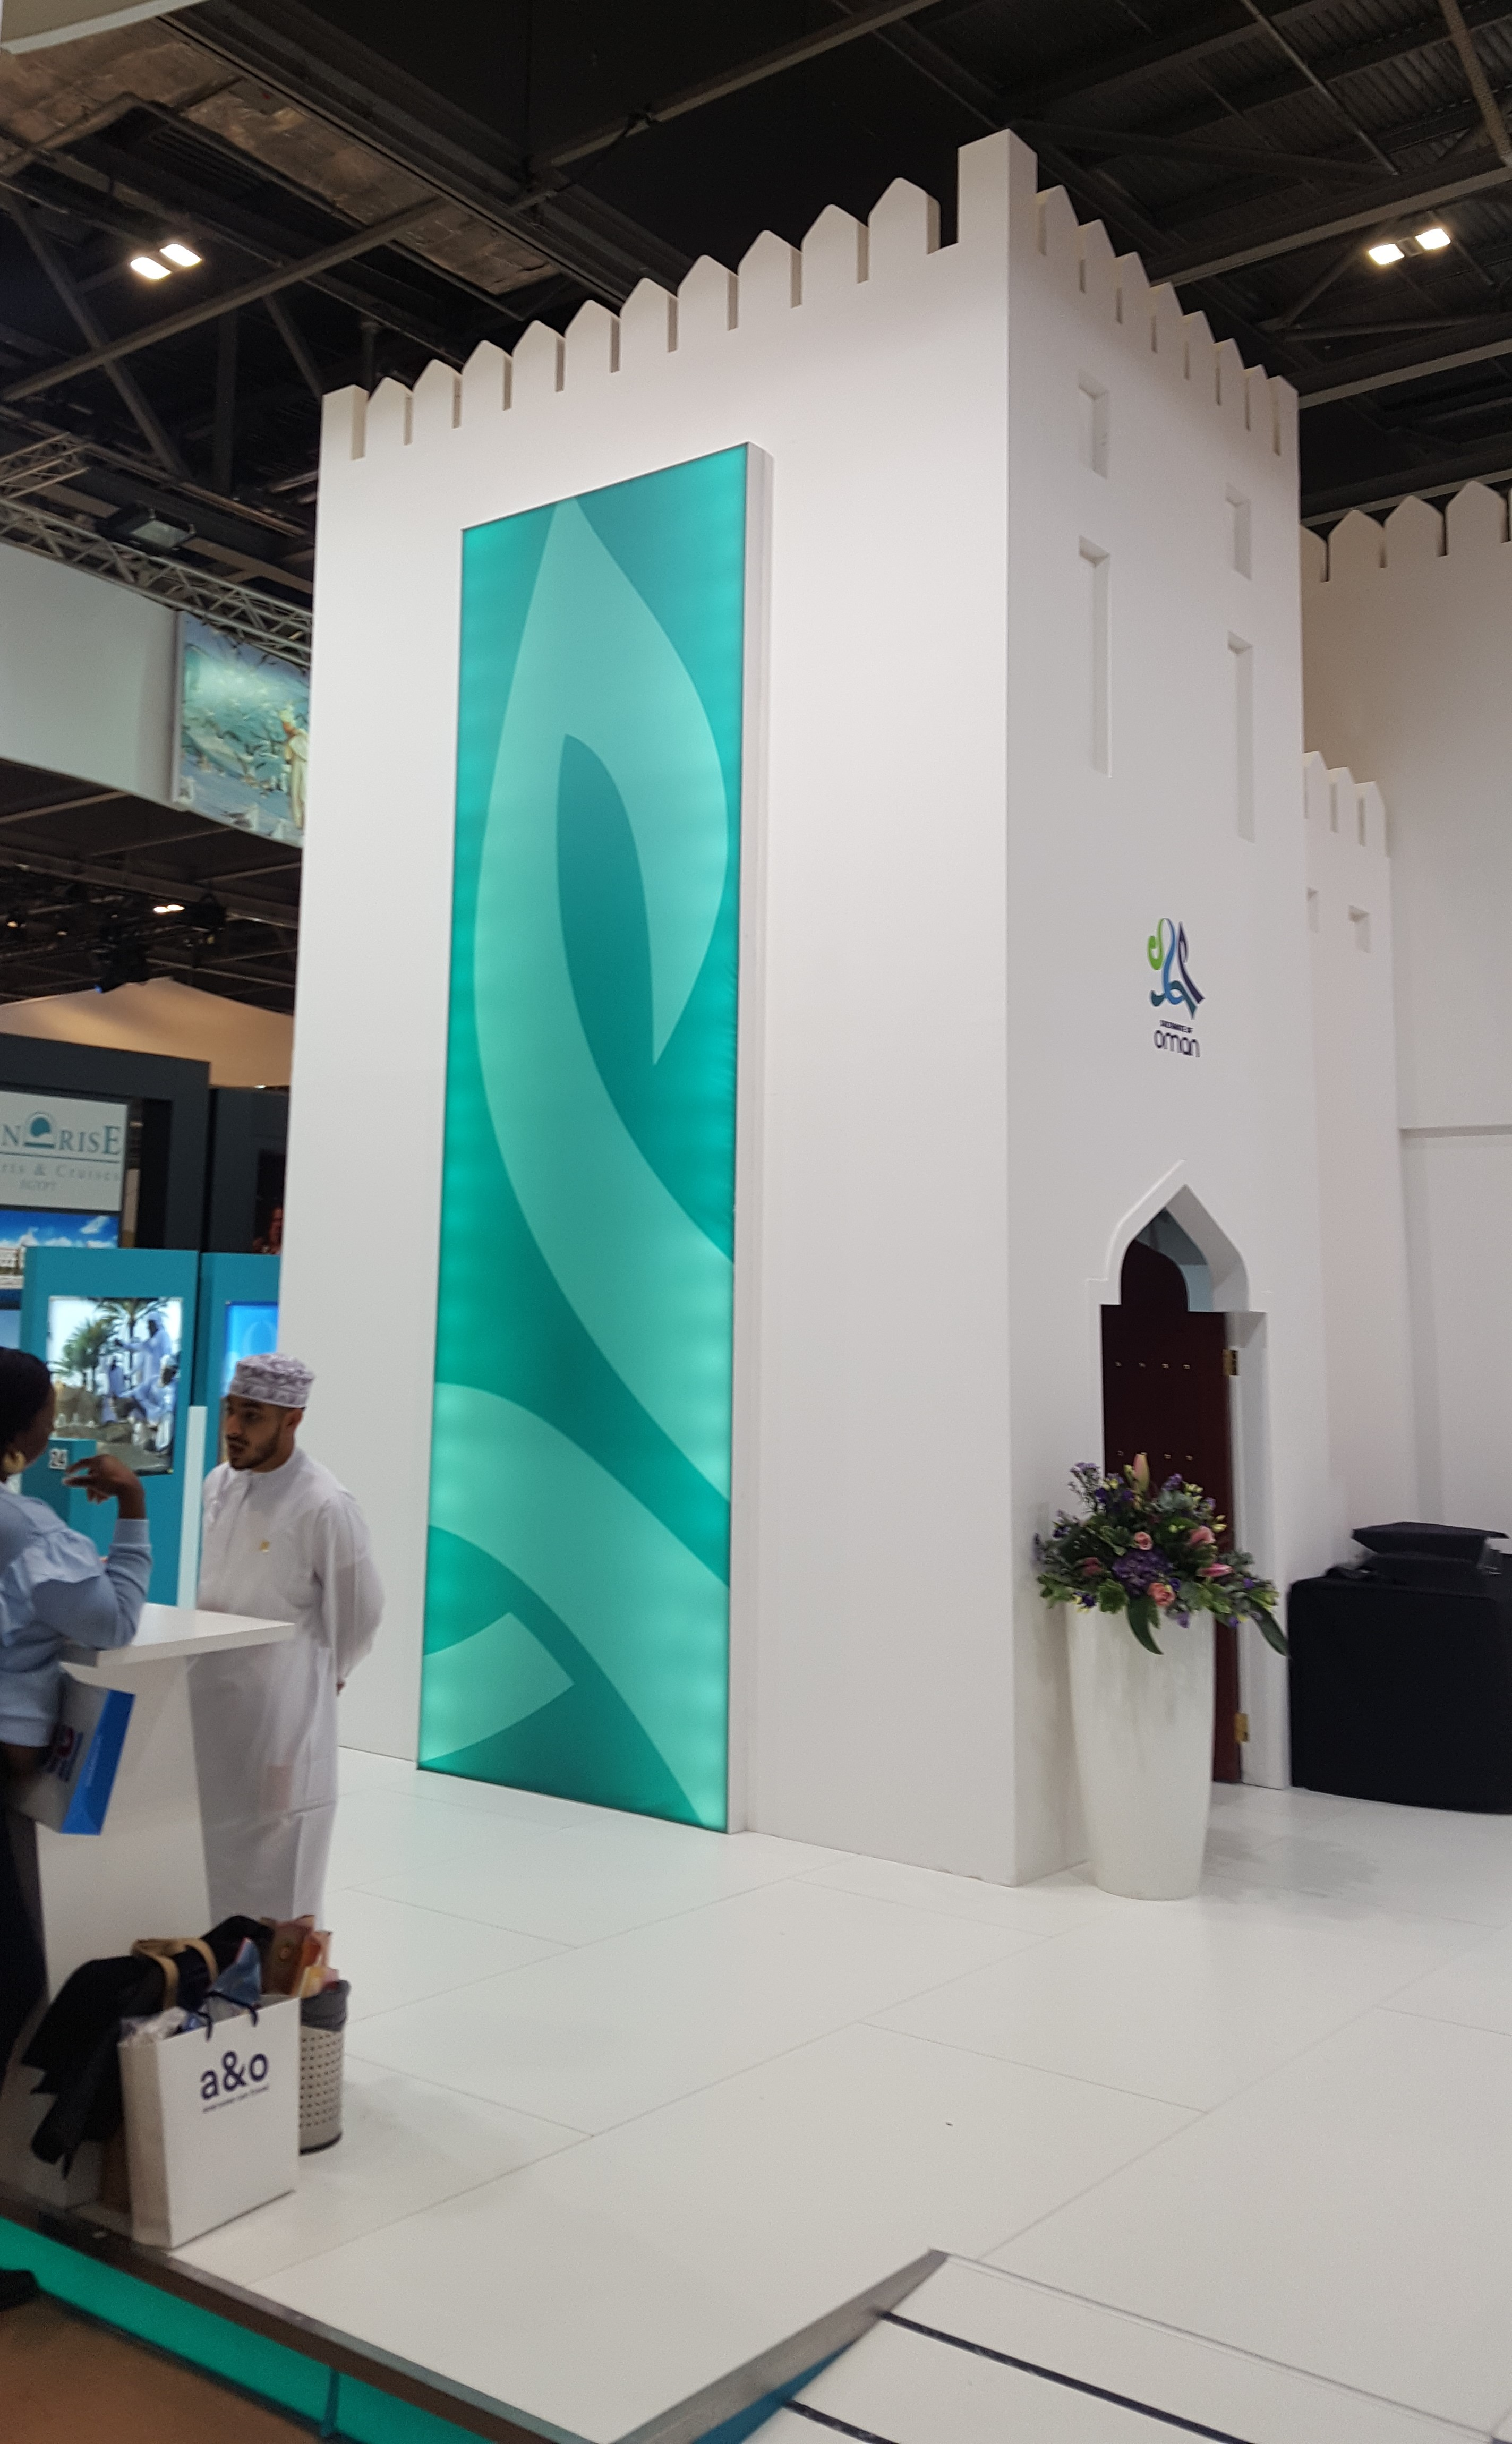 large family holiday destinations can be all over the world, here is a stall promoting Oman